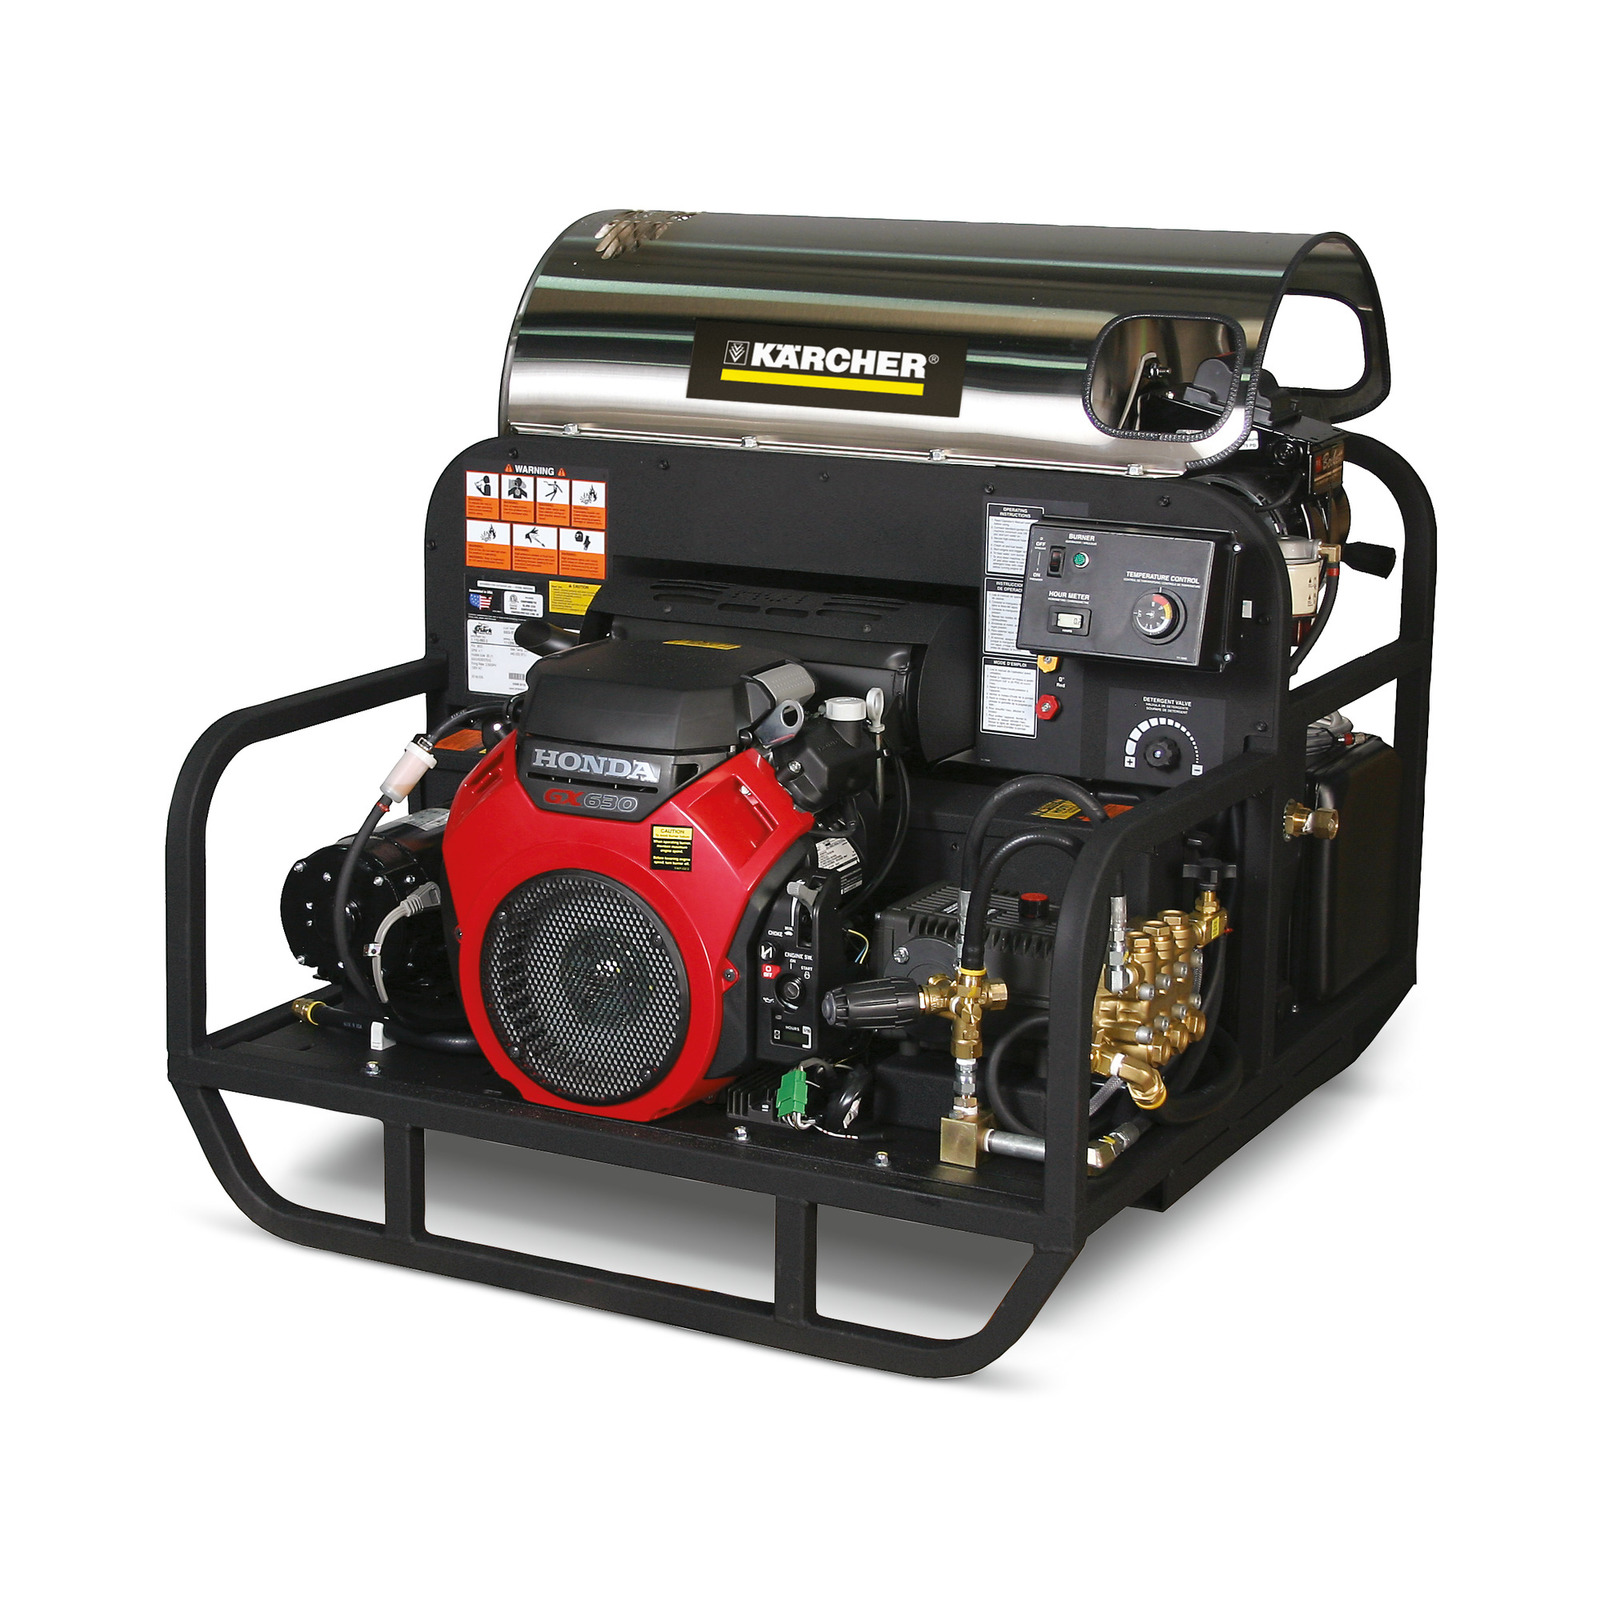 Gas Diesel powered hot water pressure washers